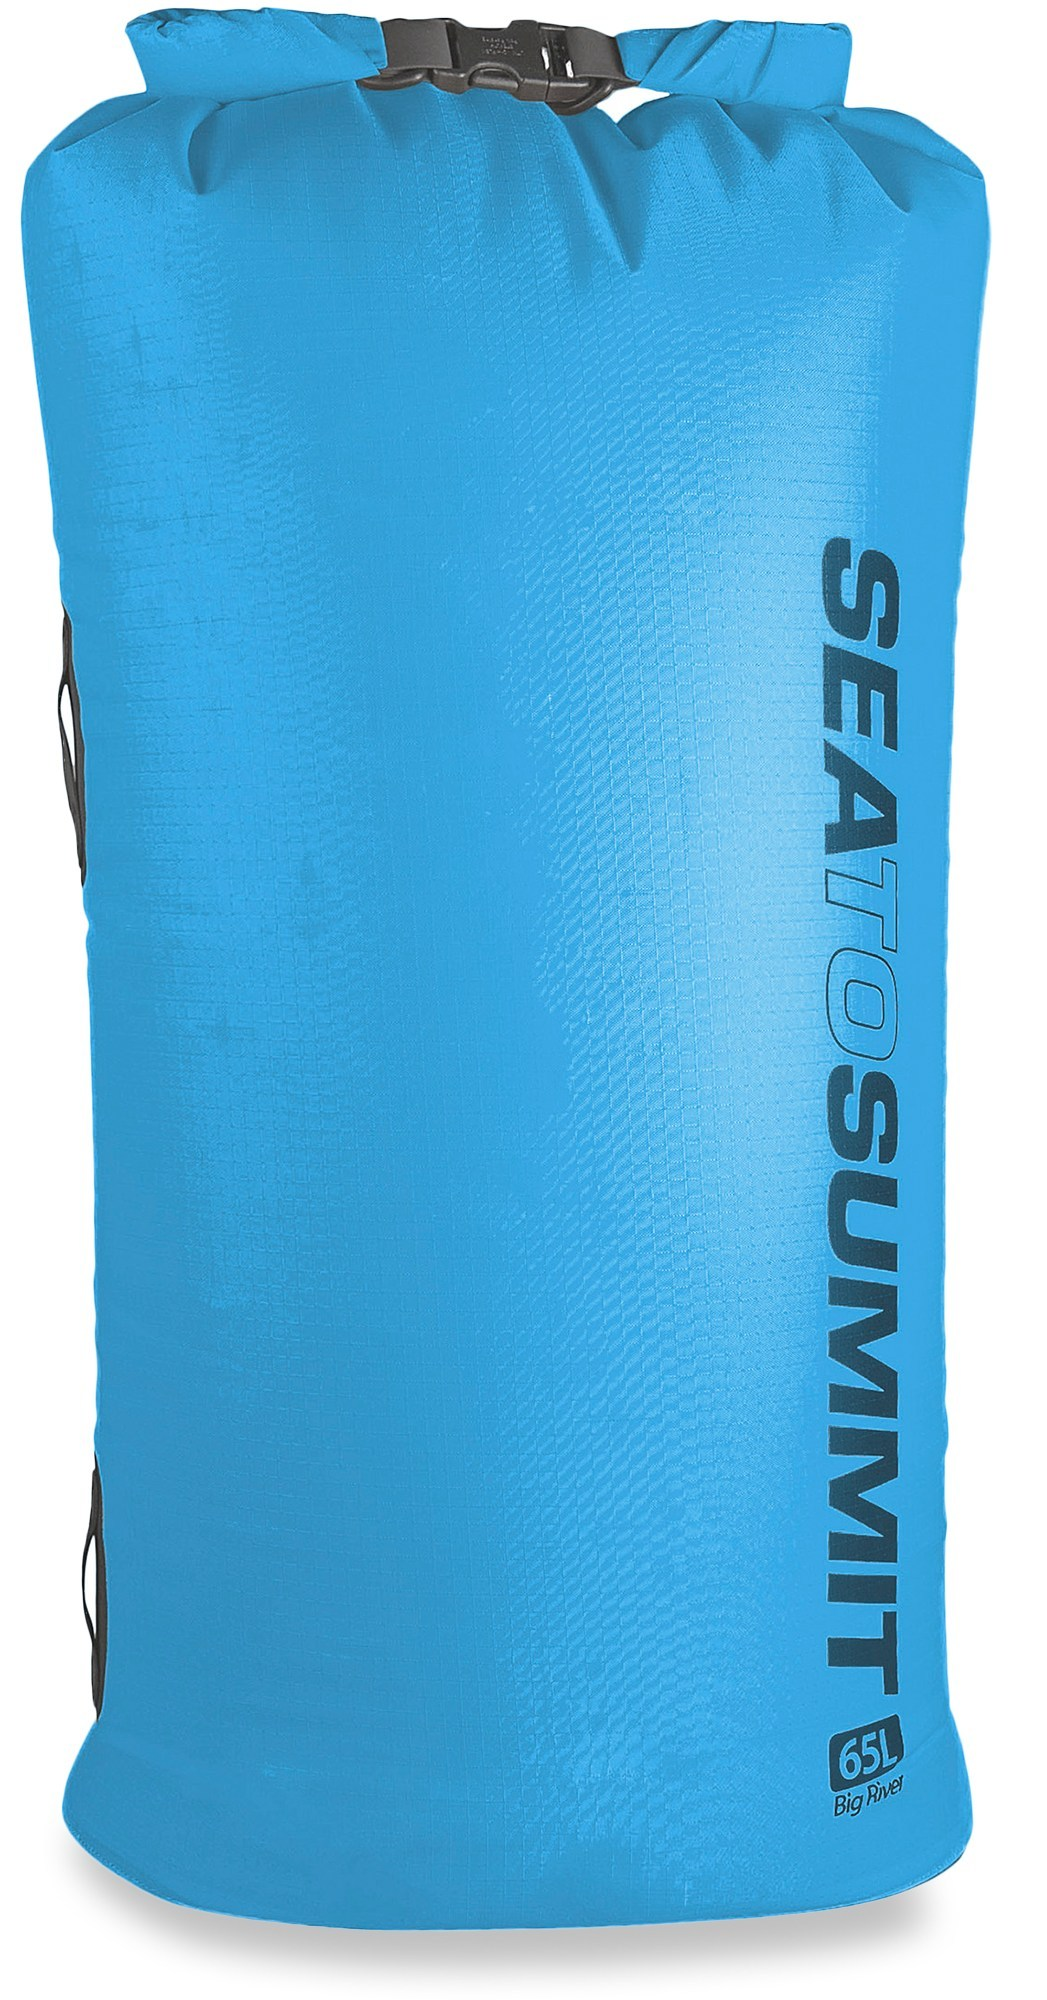 Sea to Summit Big River Dry Bag - 65 Liters